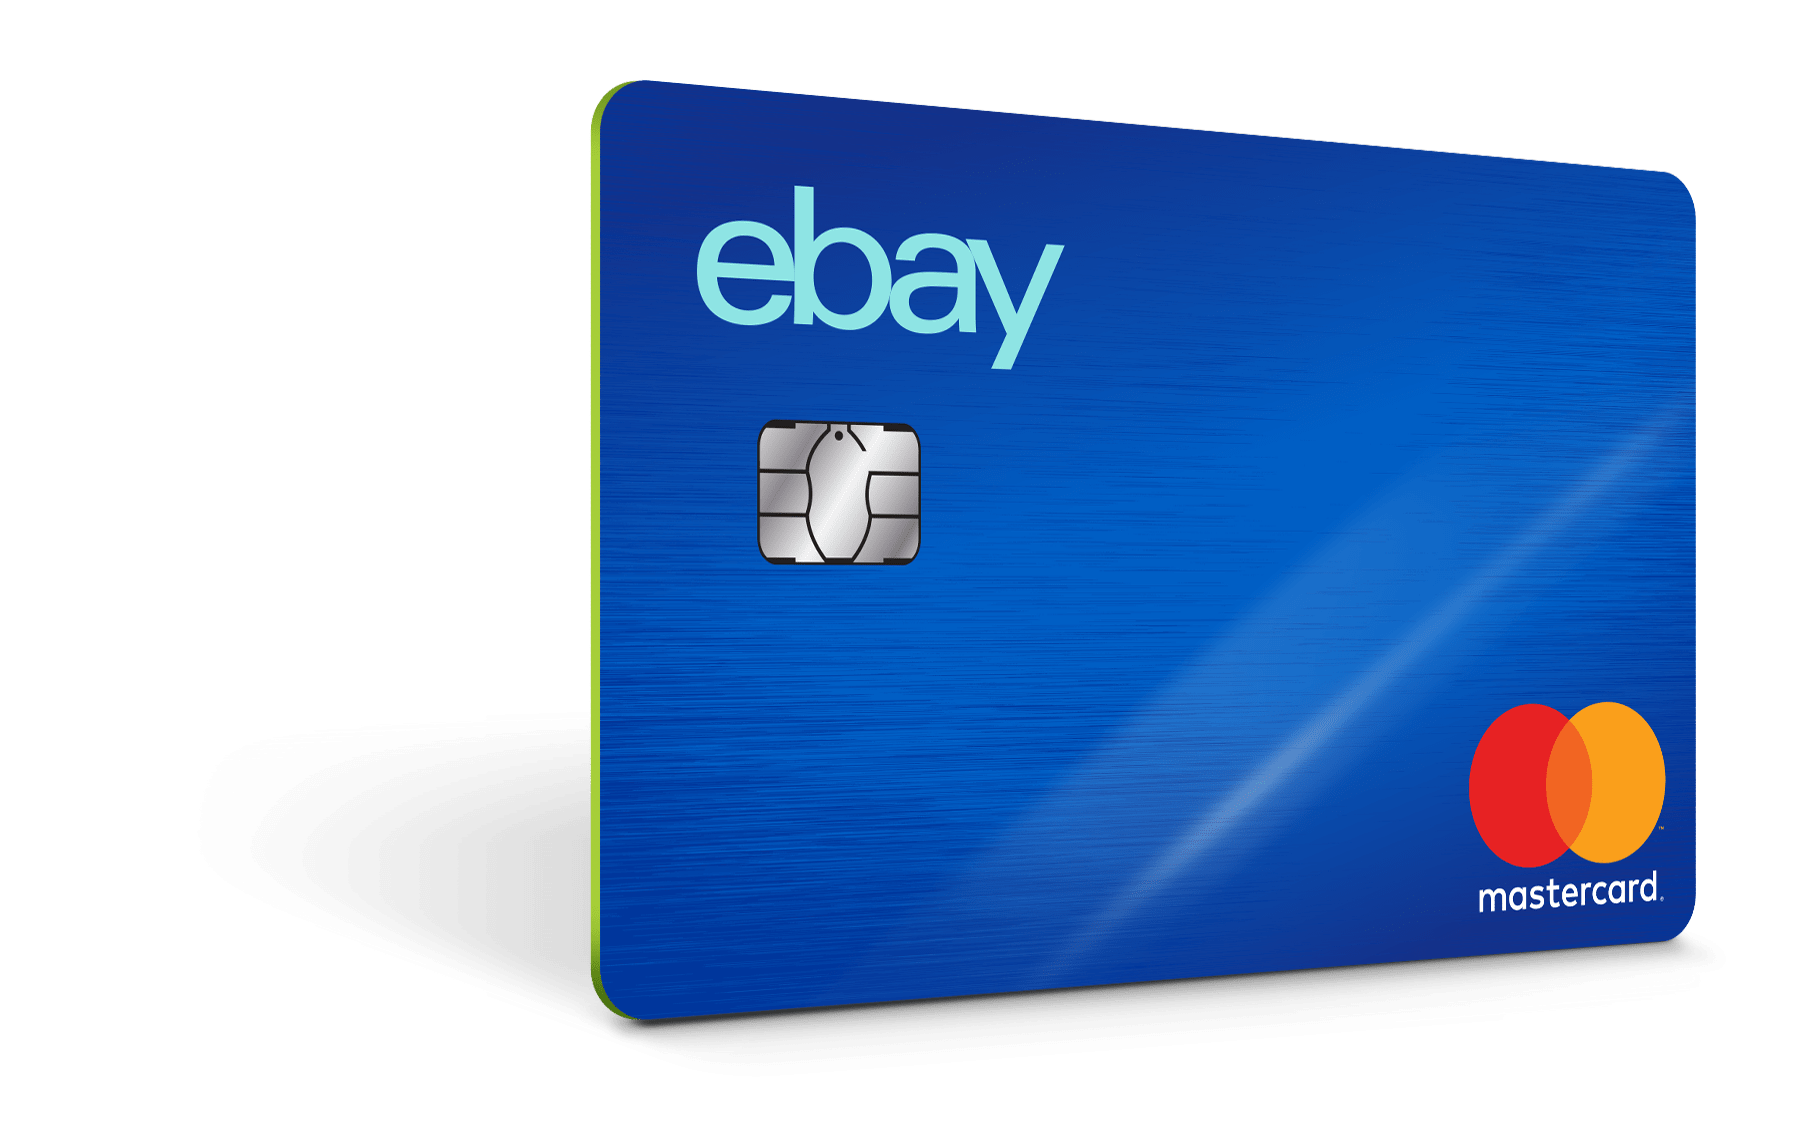 ebay maestro card coupons